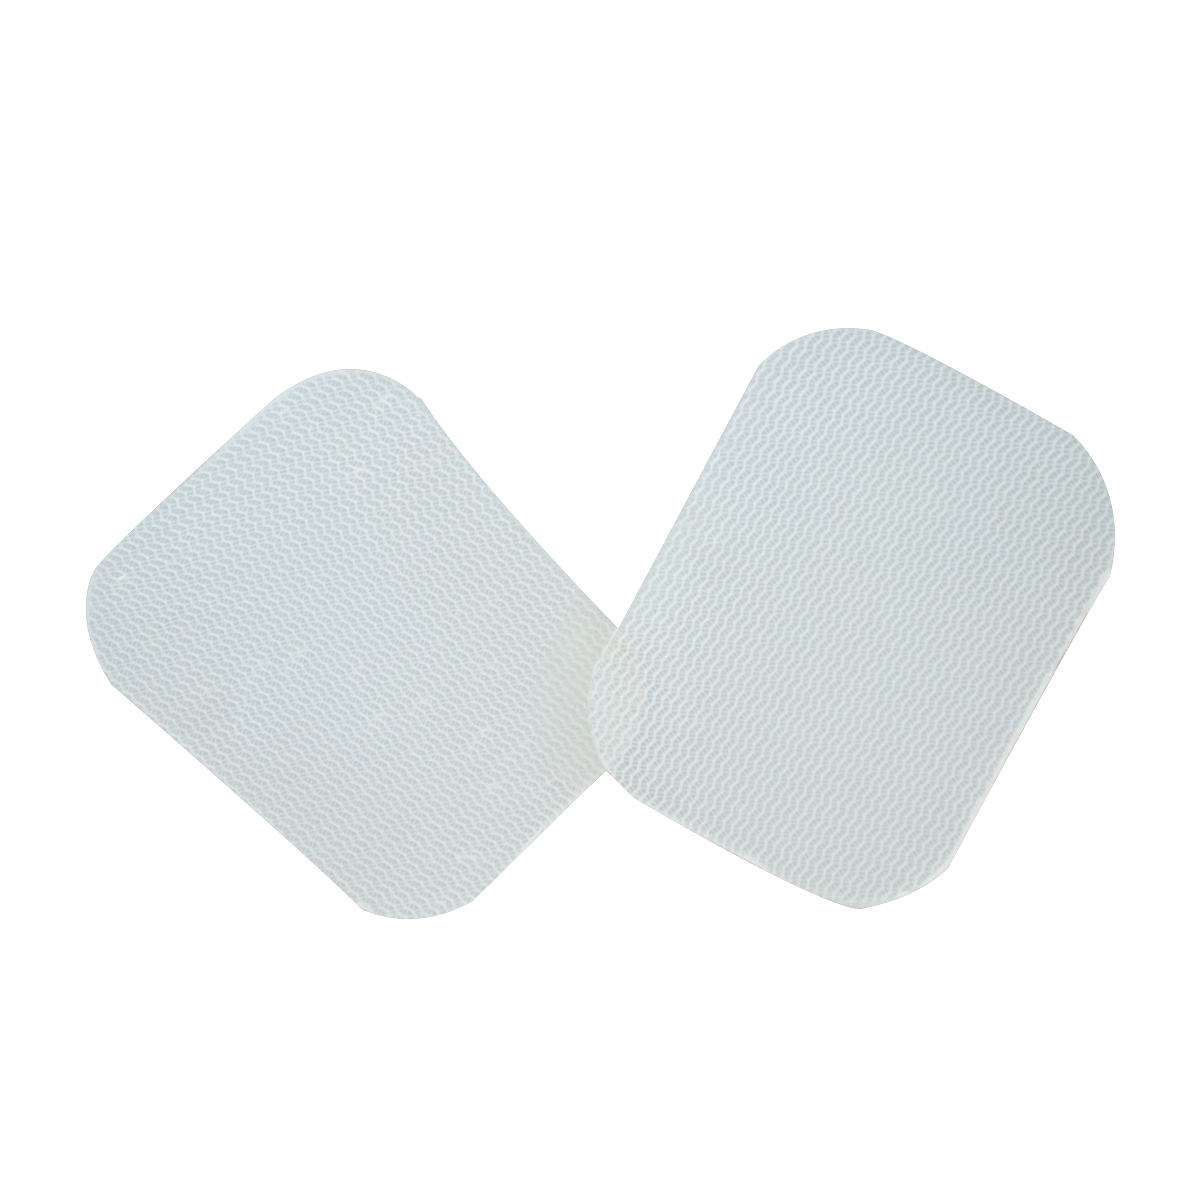 1000Pcs/Lot Adhesive Gel Tens Electrode Pads Sticker Transparent Electrode Pads For Digital Therapy Machine Muscle Stimulator leravan mi home snap on electrode pads 2pcs